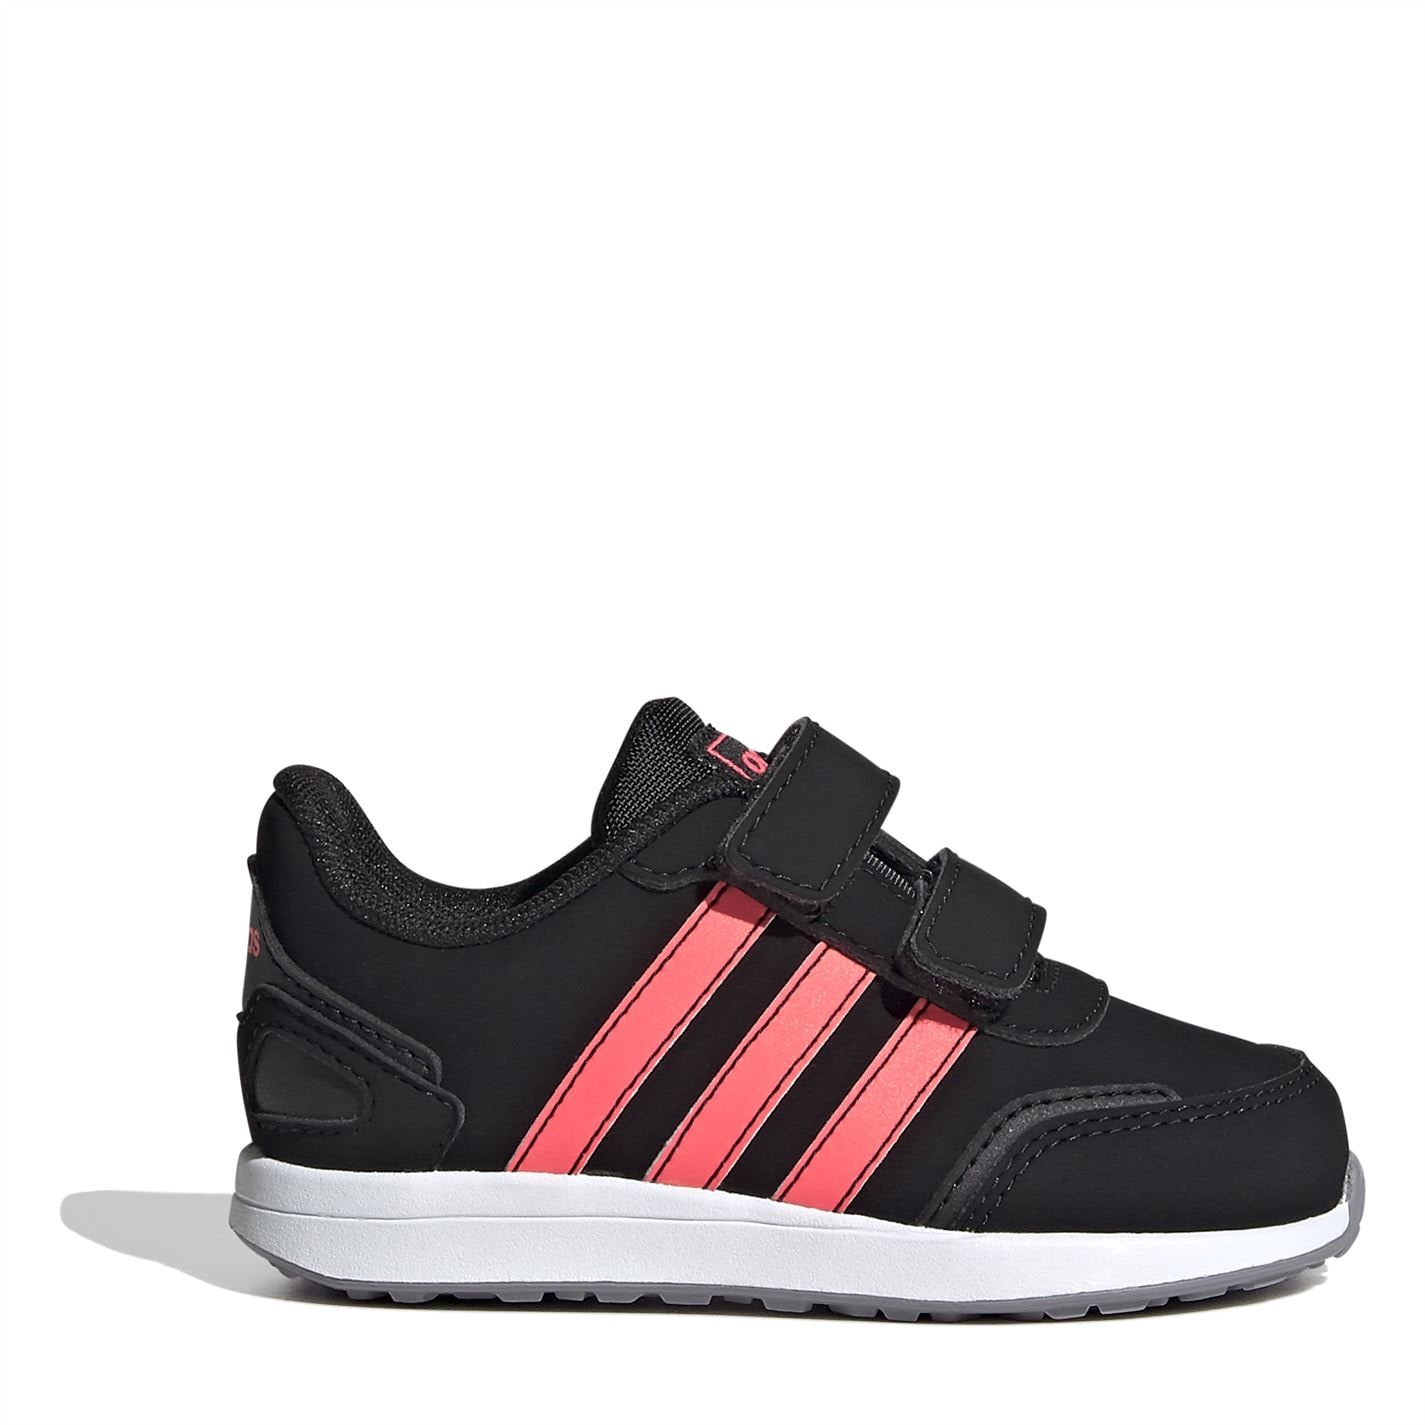 adidas Switch Nubuck Infant Girls Trainers Blk/Pink/Wht